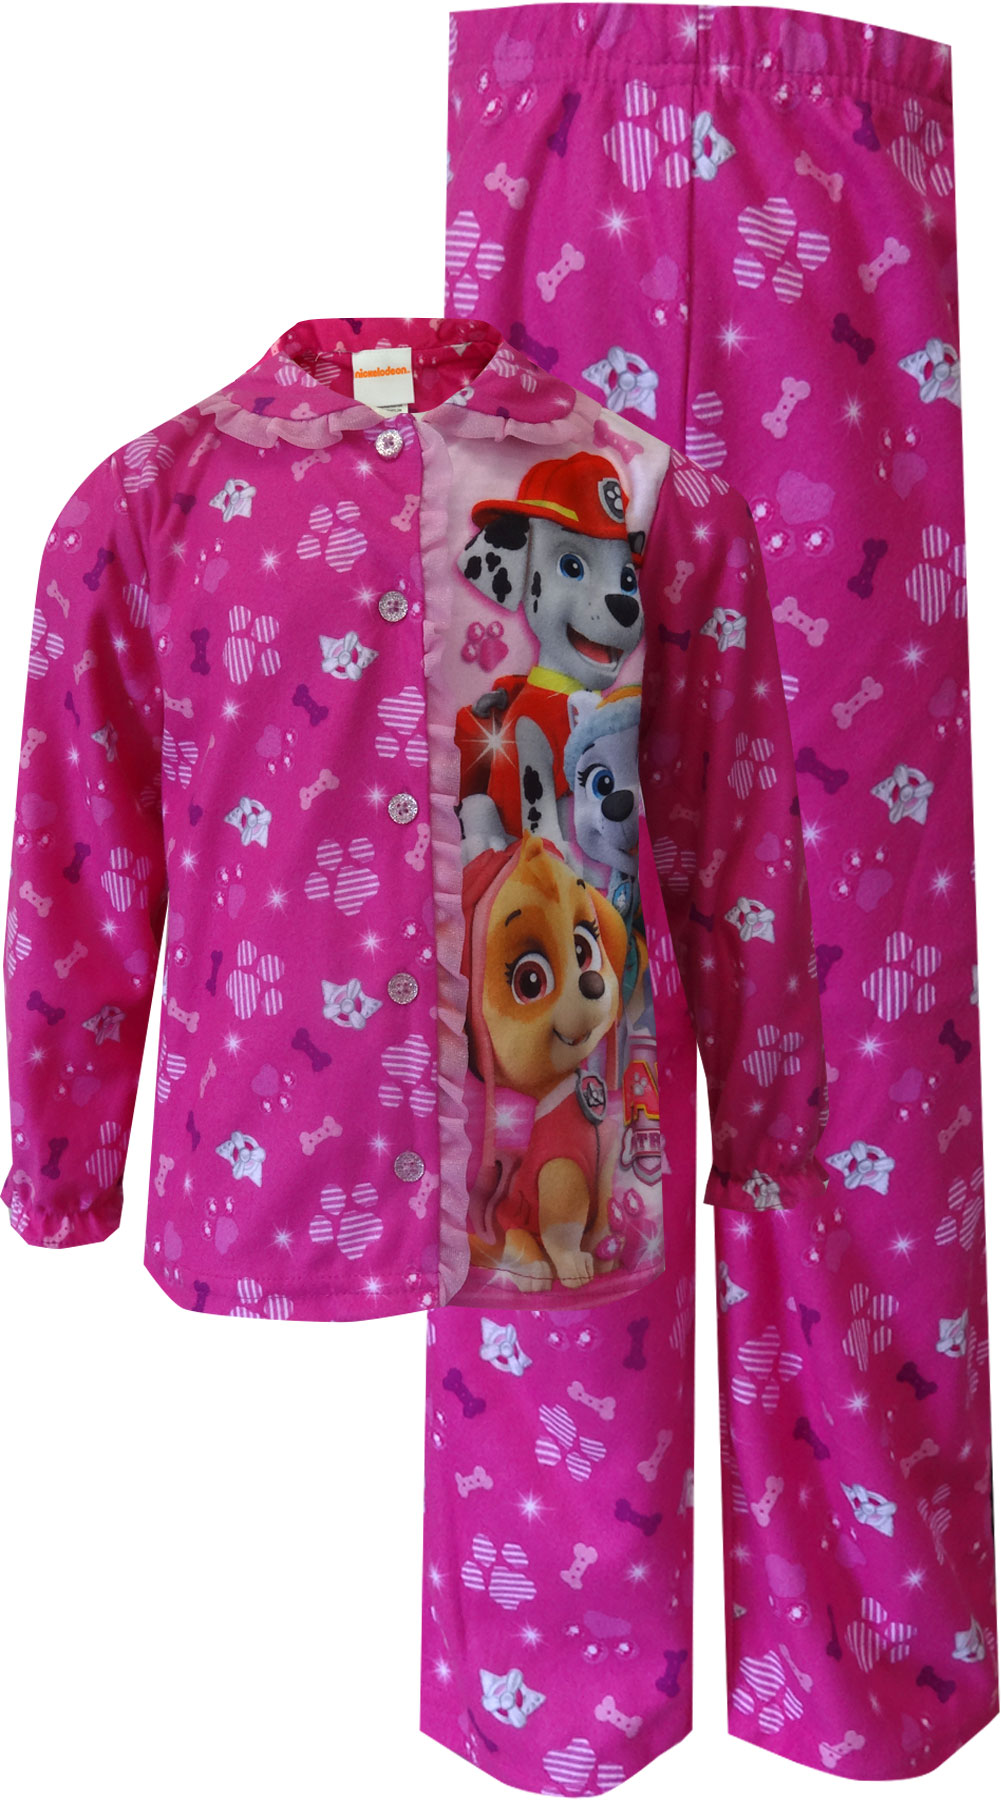 59052a4e58 Girls  underwear and pajamas with Curious George